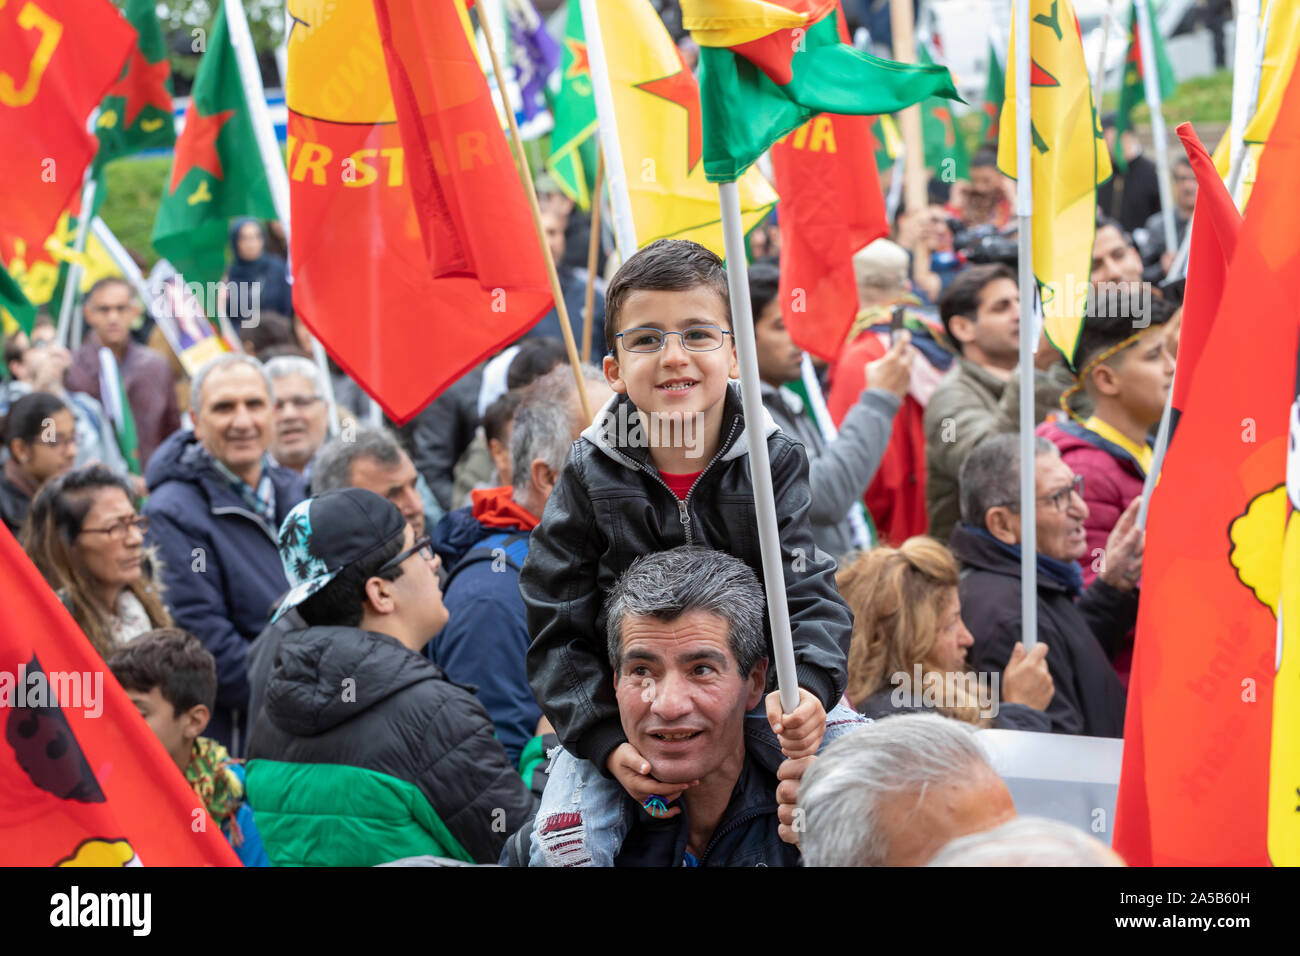 Demonstration on Saturday 2019/10/19 in Cologne against the military offensive of Turkey in Northern Syria with about 10,000 participants. Stock Photo